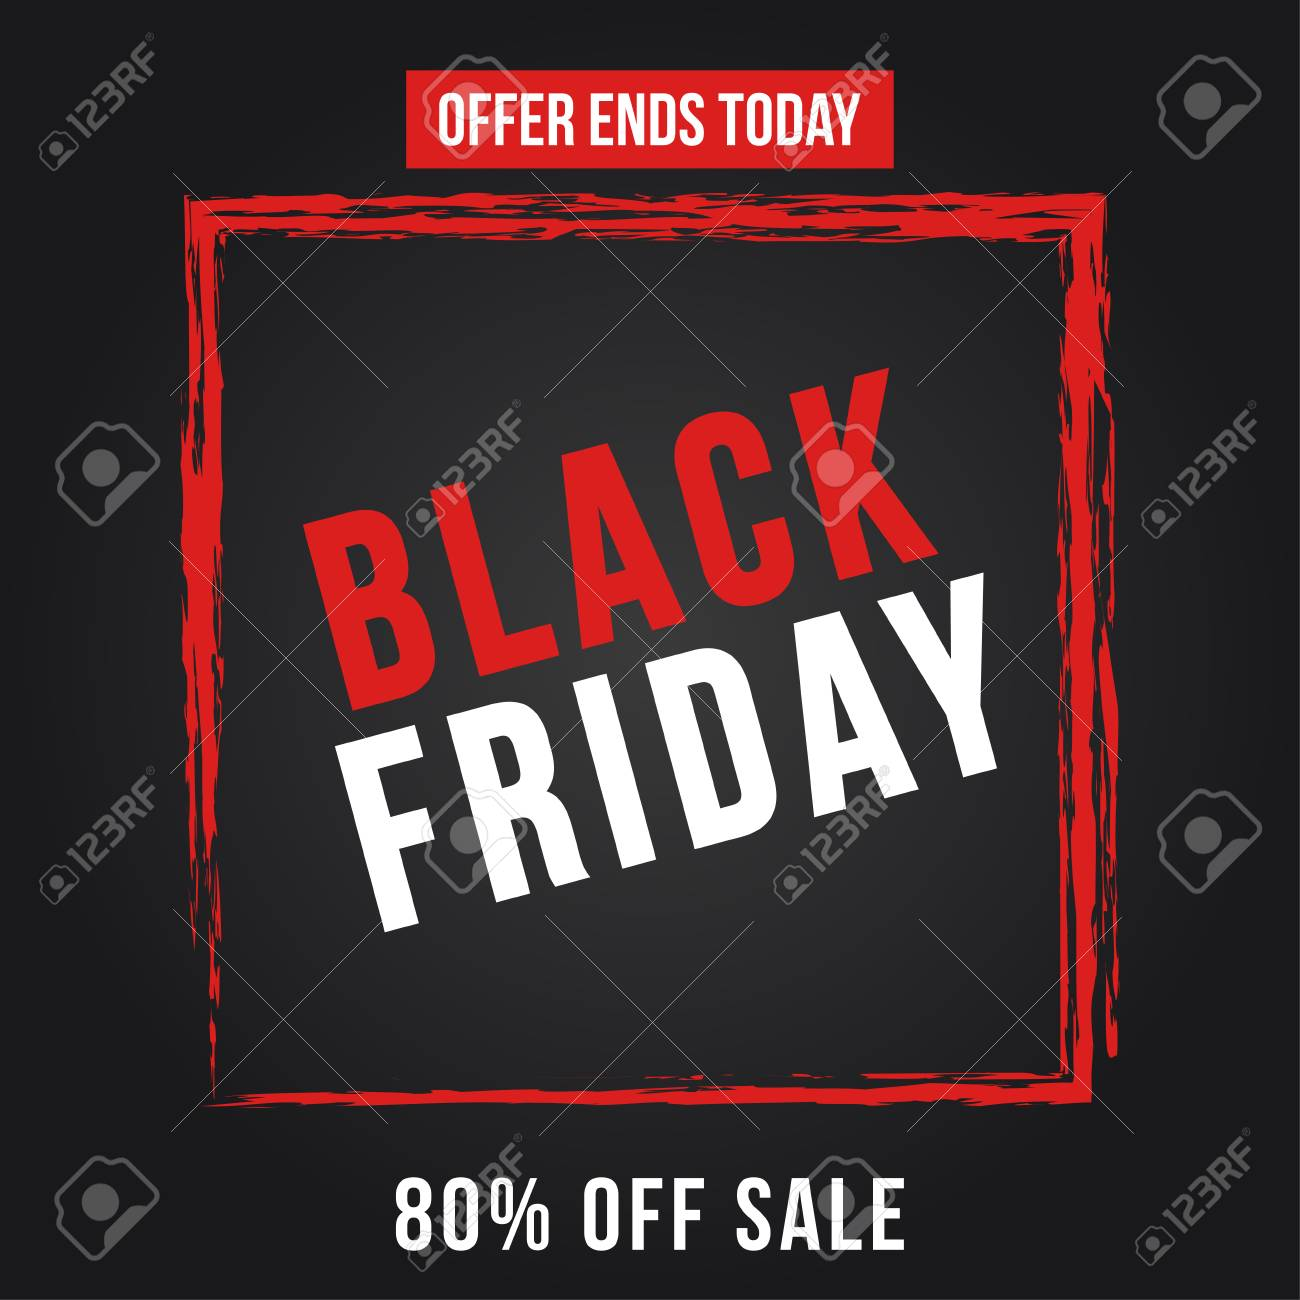 Black Friday Sale Black Friday Sale Poster Seasonal Discount Banner With Red Grunge Frame On Black Background Holiday Design Template For Advertising Shopping